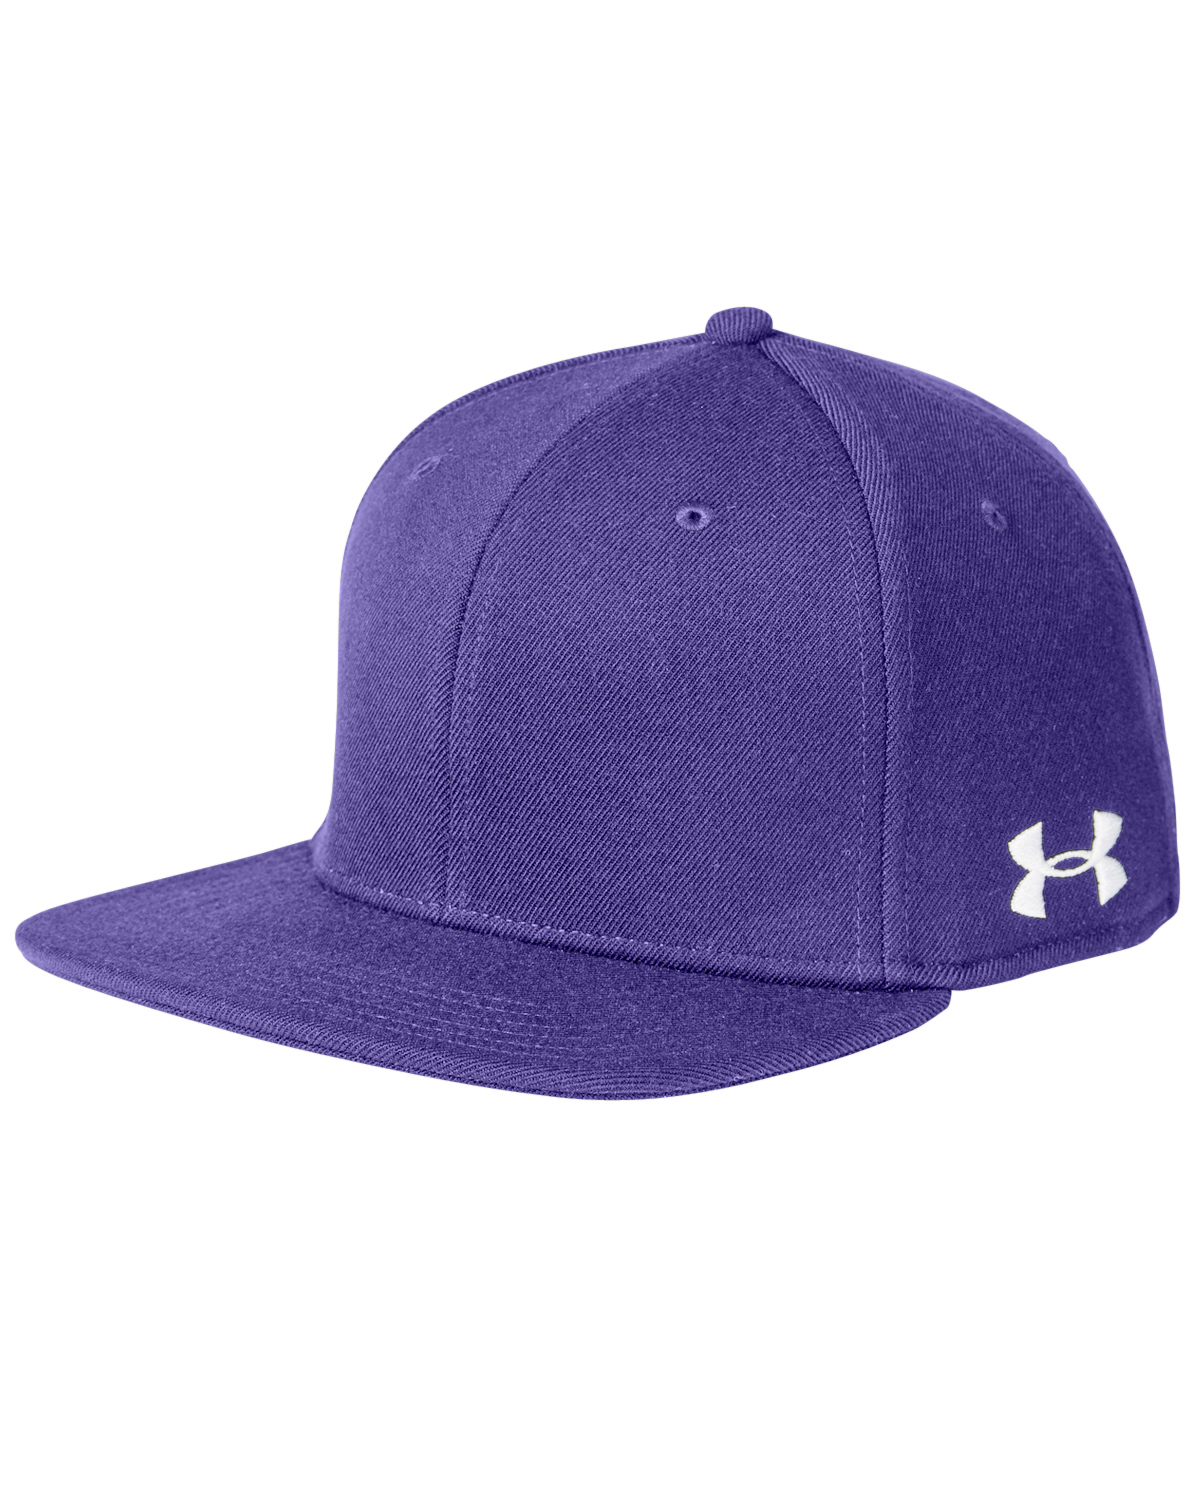 Under Armour 1282141 - Flat Bill Cap - Solid